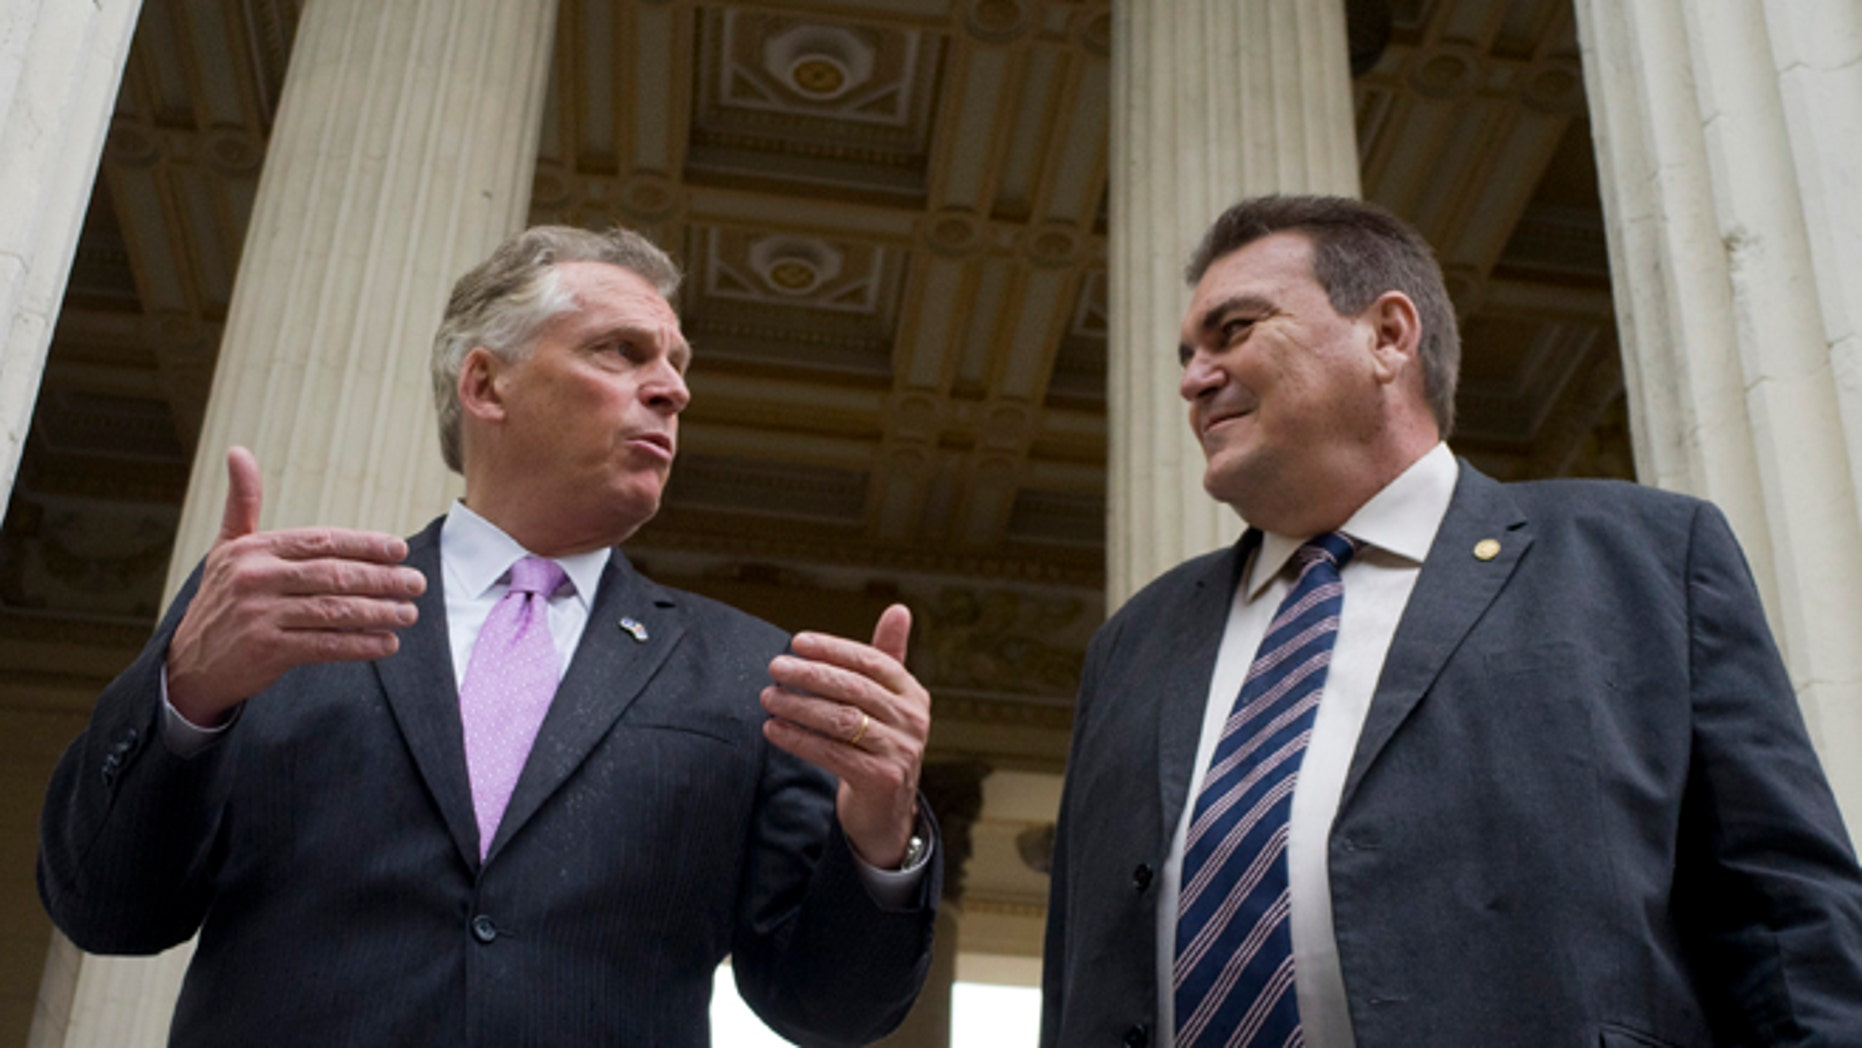 Virginia Governor Terry McAuliffe, left, talks with the dean of the University of Havana, Gustavo Suárez Cobreiro, in Havana, Cuba, Monday, Jan. 4, 2016. McAuliffe is in Havana heading a delegation that seeks to strengthen trade ties between the U.S. and Cuba, just over a year after the thawing of relations between the two countries. (AP Photo/Ramón Espinosa)